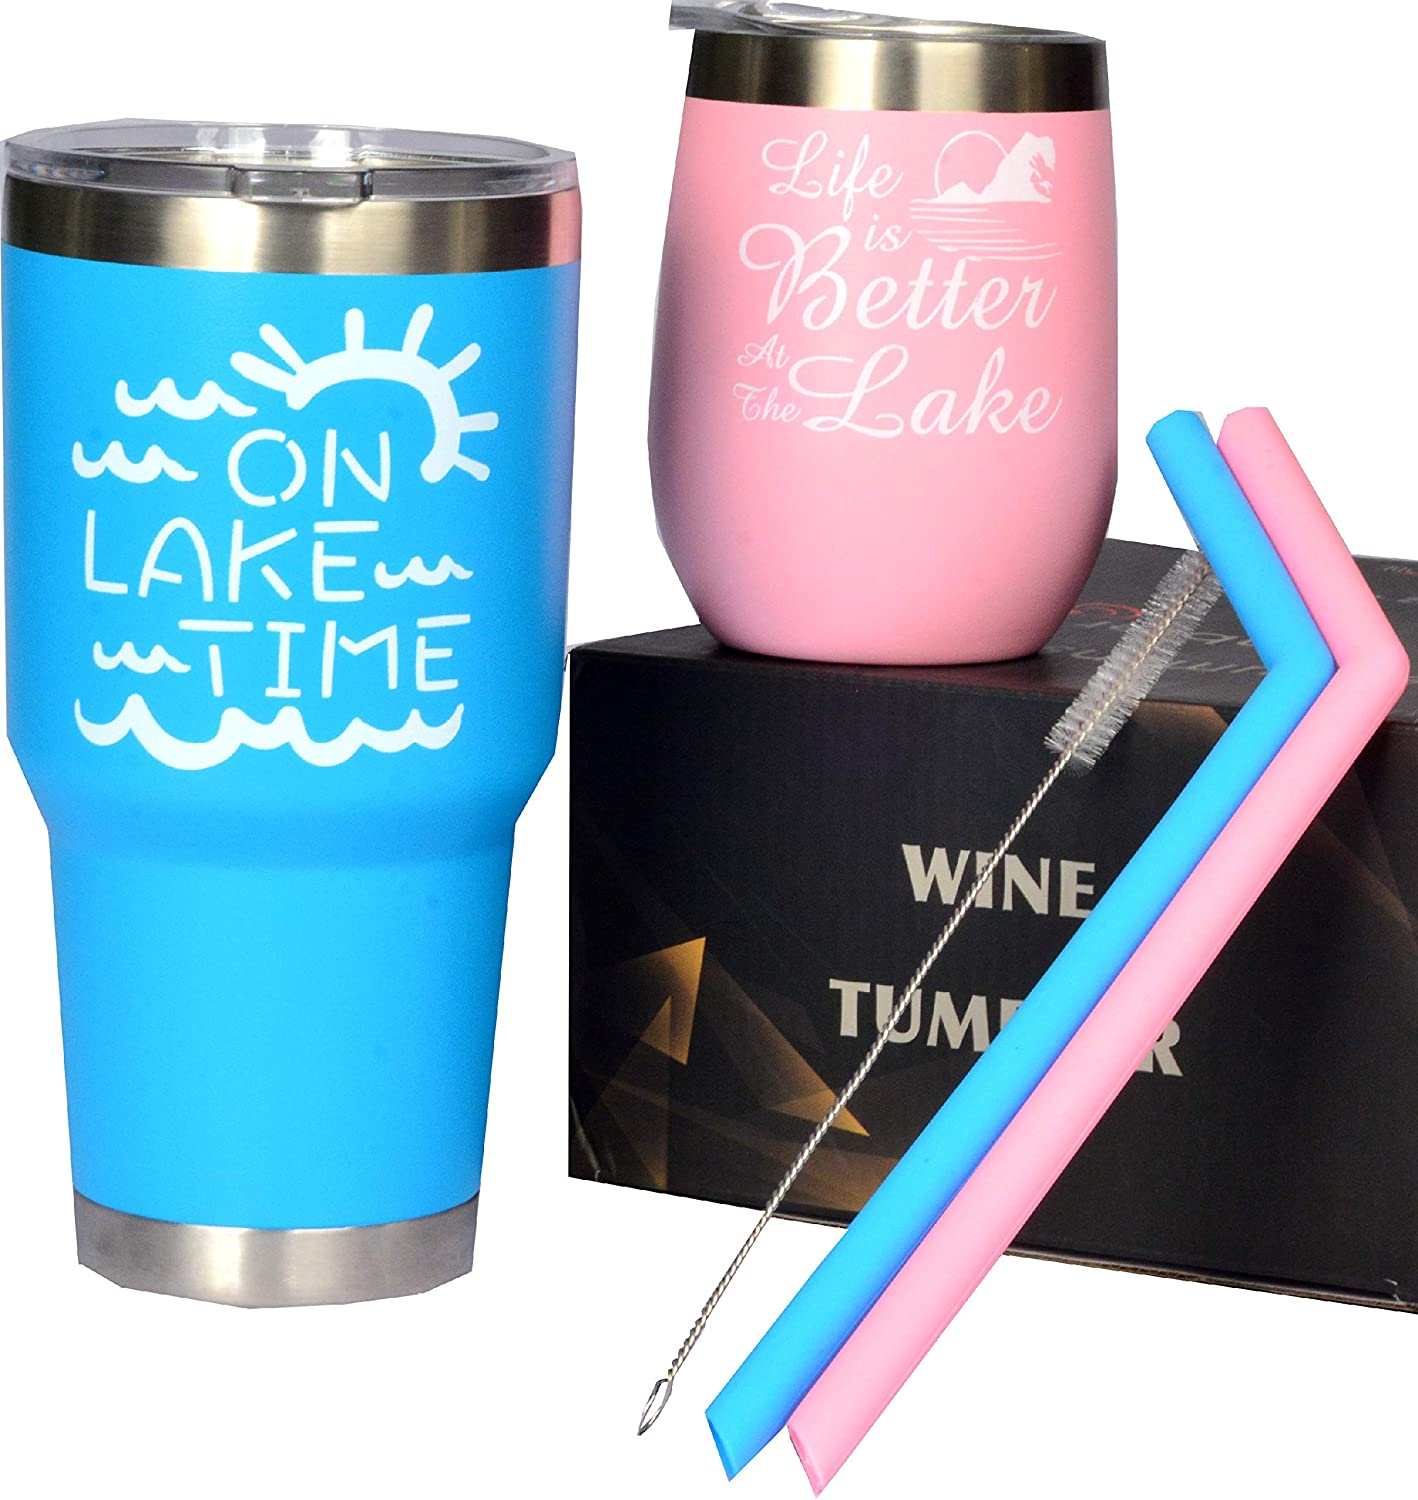 Lake Gifts, Lake Tumblers, Life is better at the Lake, On Lake Time Tumbler Cup, Lake Life Accessories Gifts, Lake Gifts, Gifts for Lake Lovers, Gifts for Boat Owner, Lake Life, Lake Life Gifts